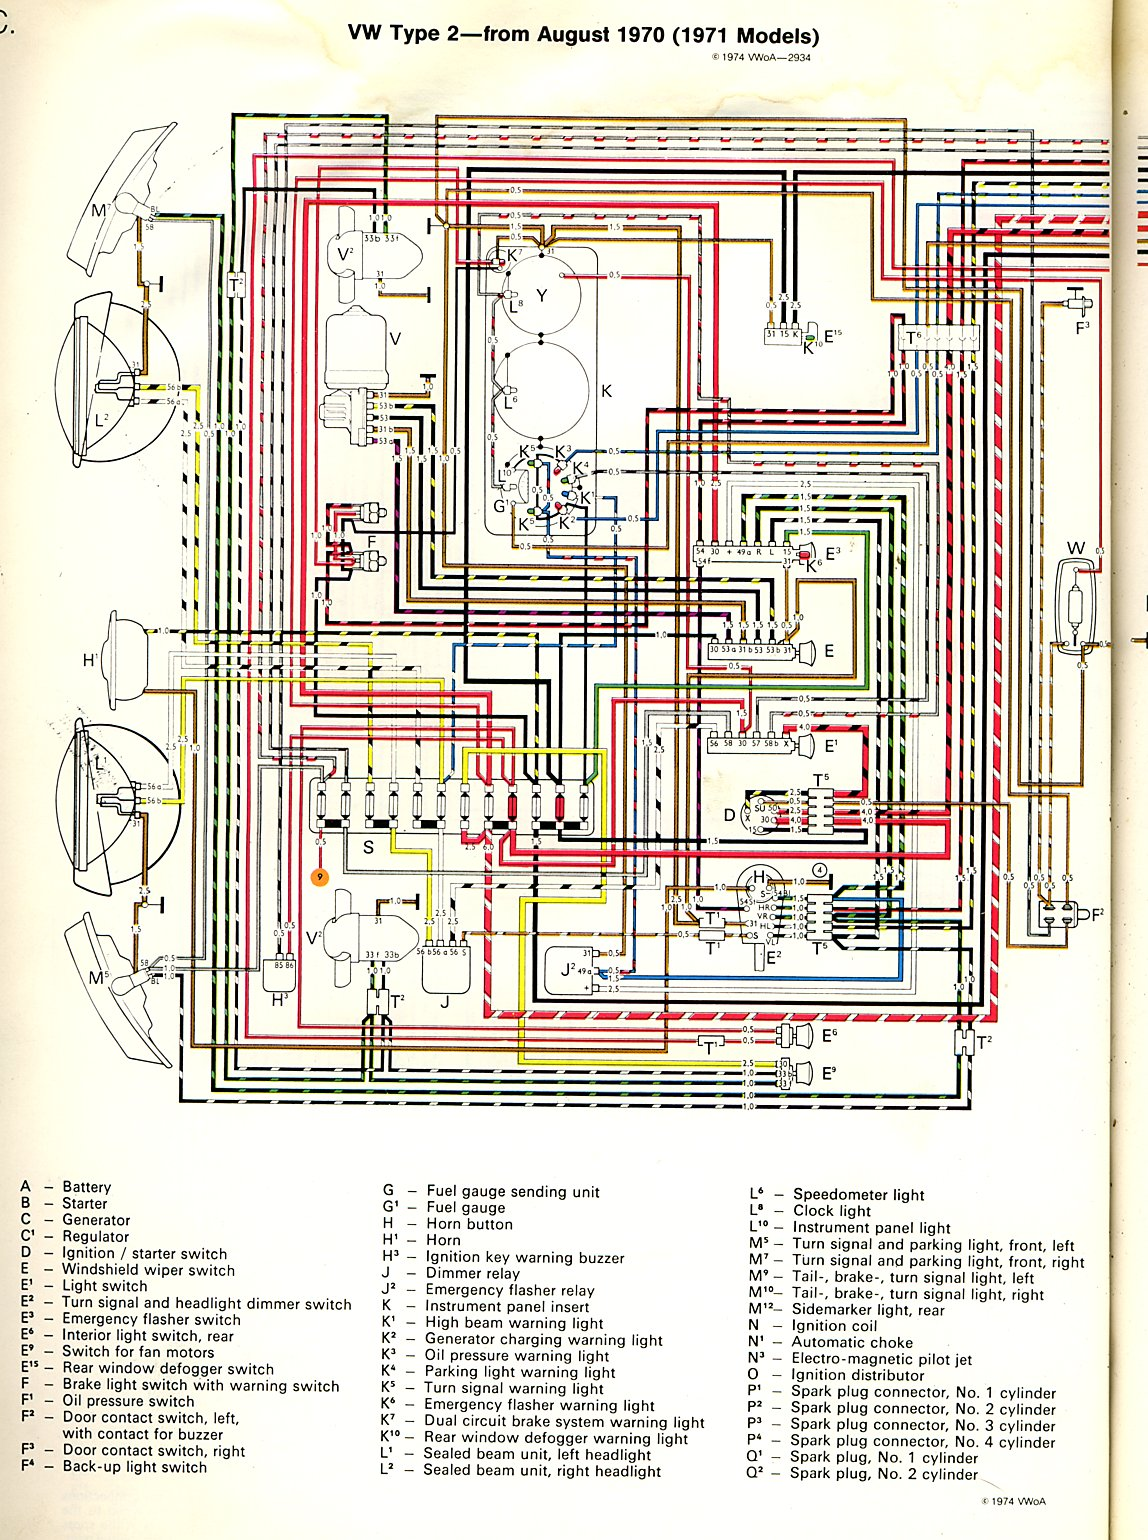 1976 Corvette Wiper Switch Wiring Diagram Wiring And Interior